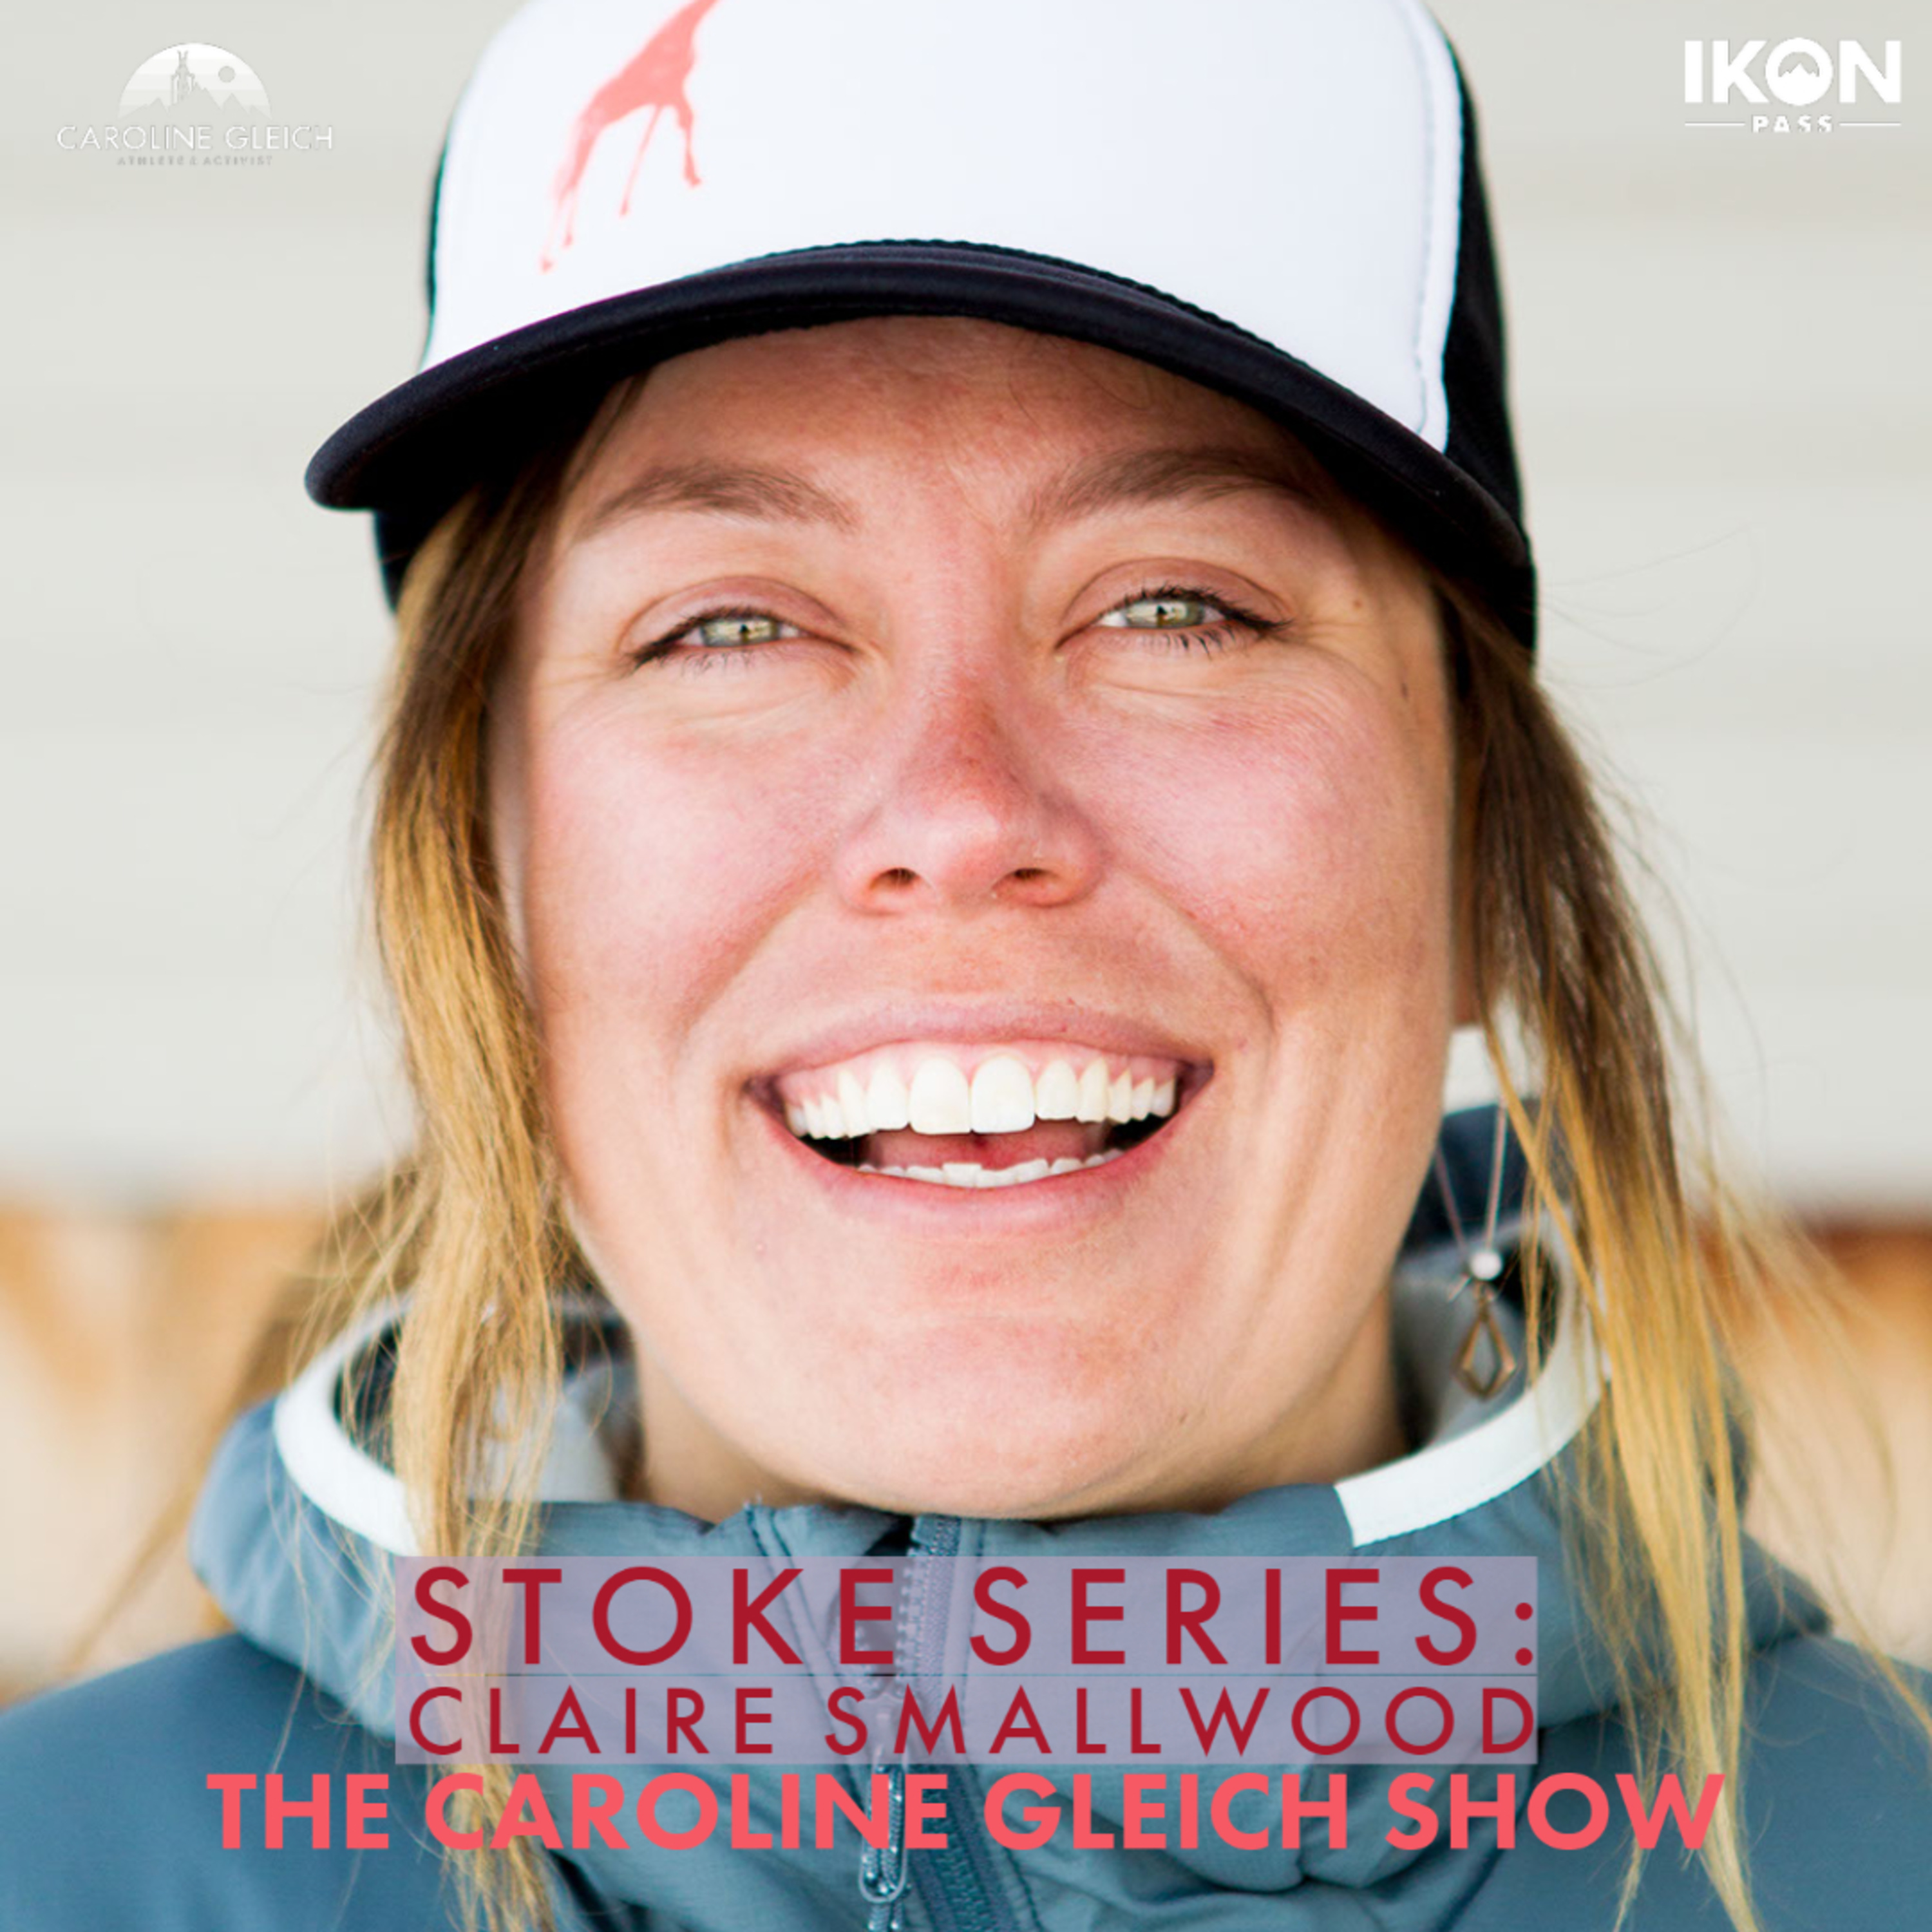 Stoke Series: Uplifting Girls and Women With Claire Smallwood and SheJumps